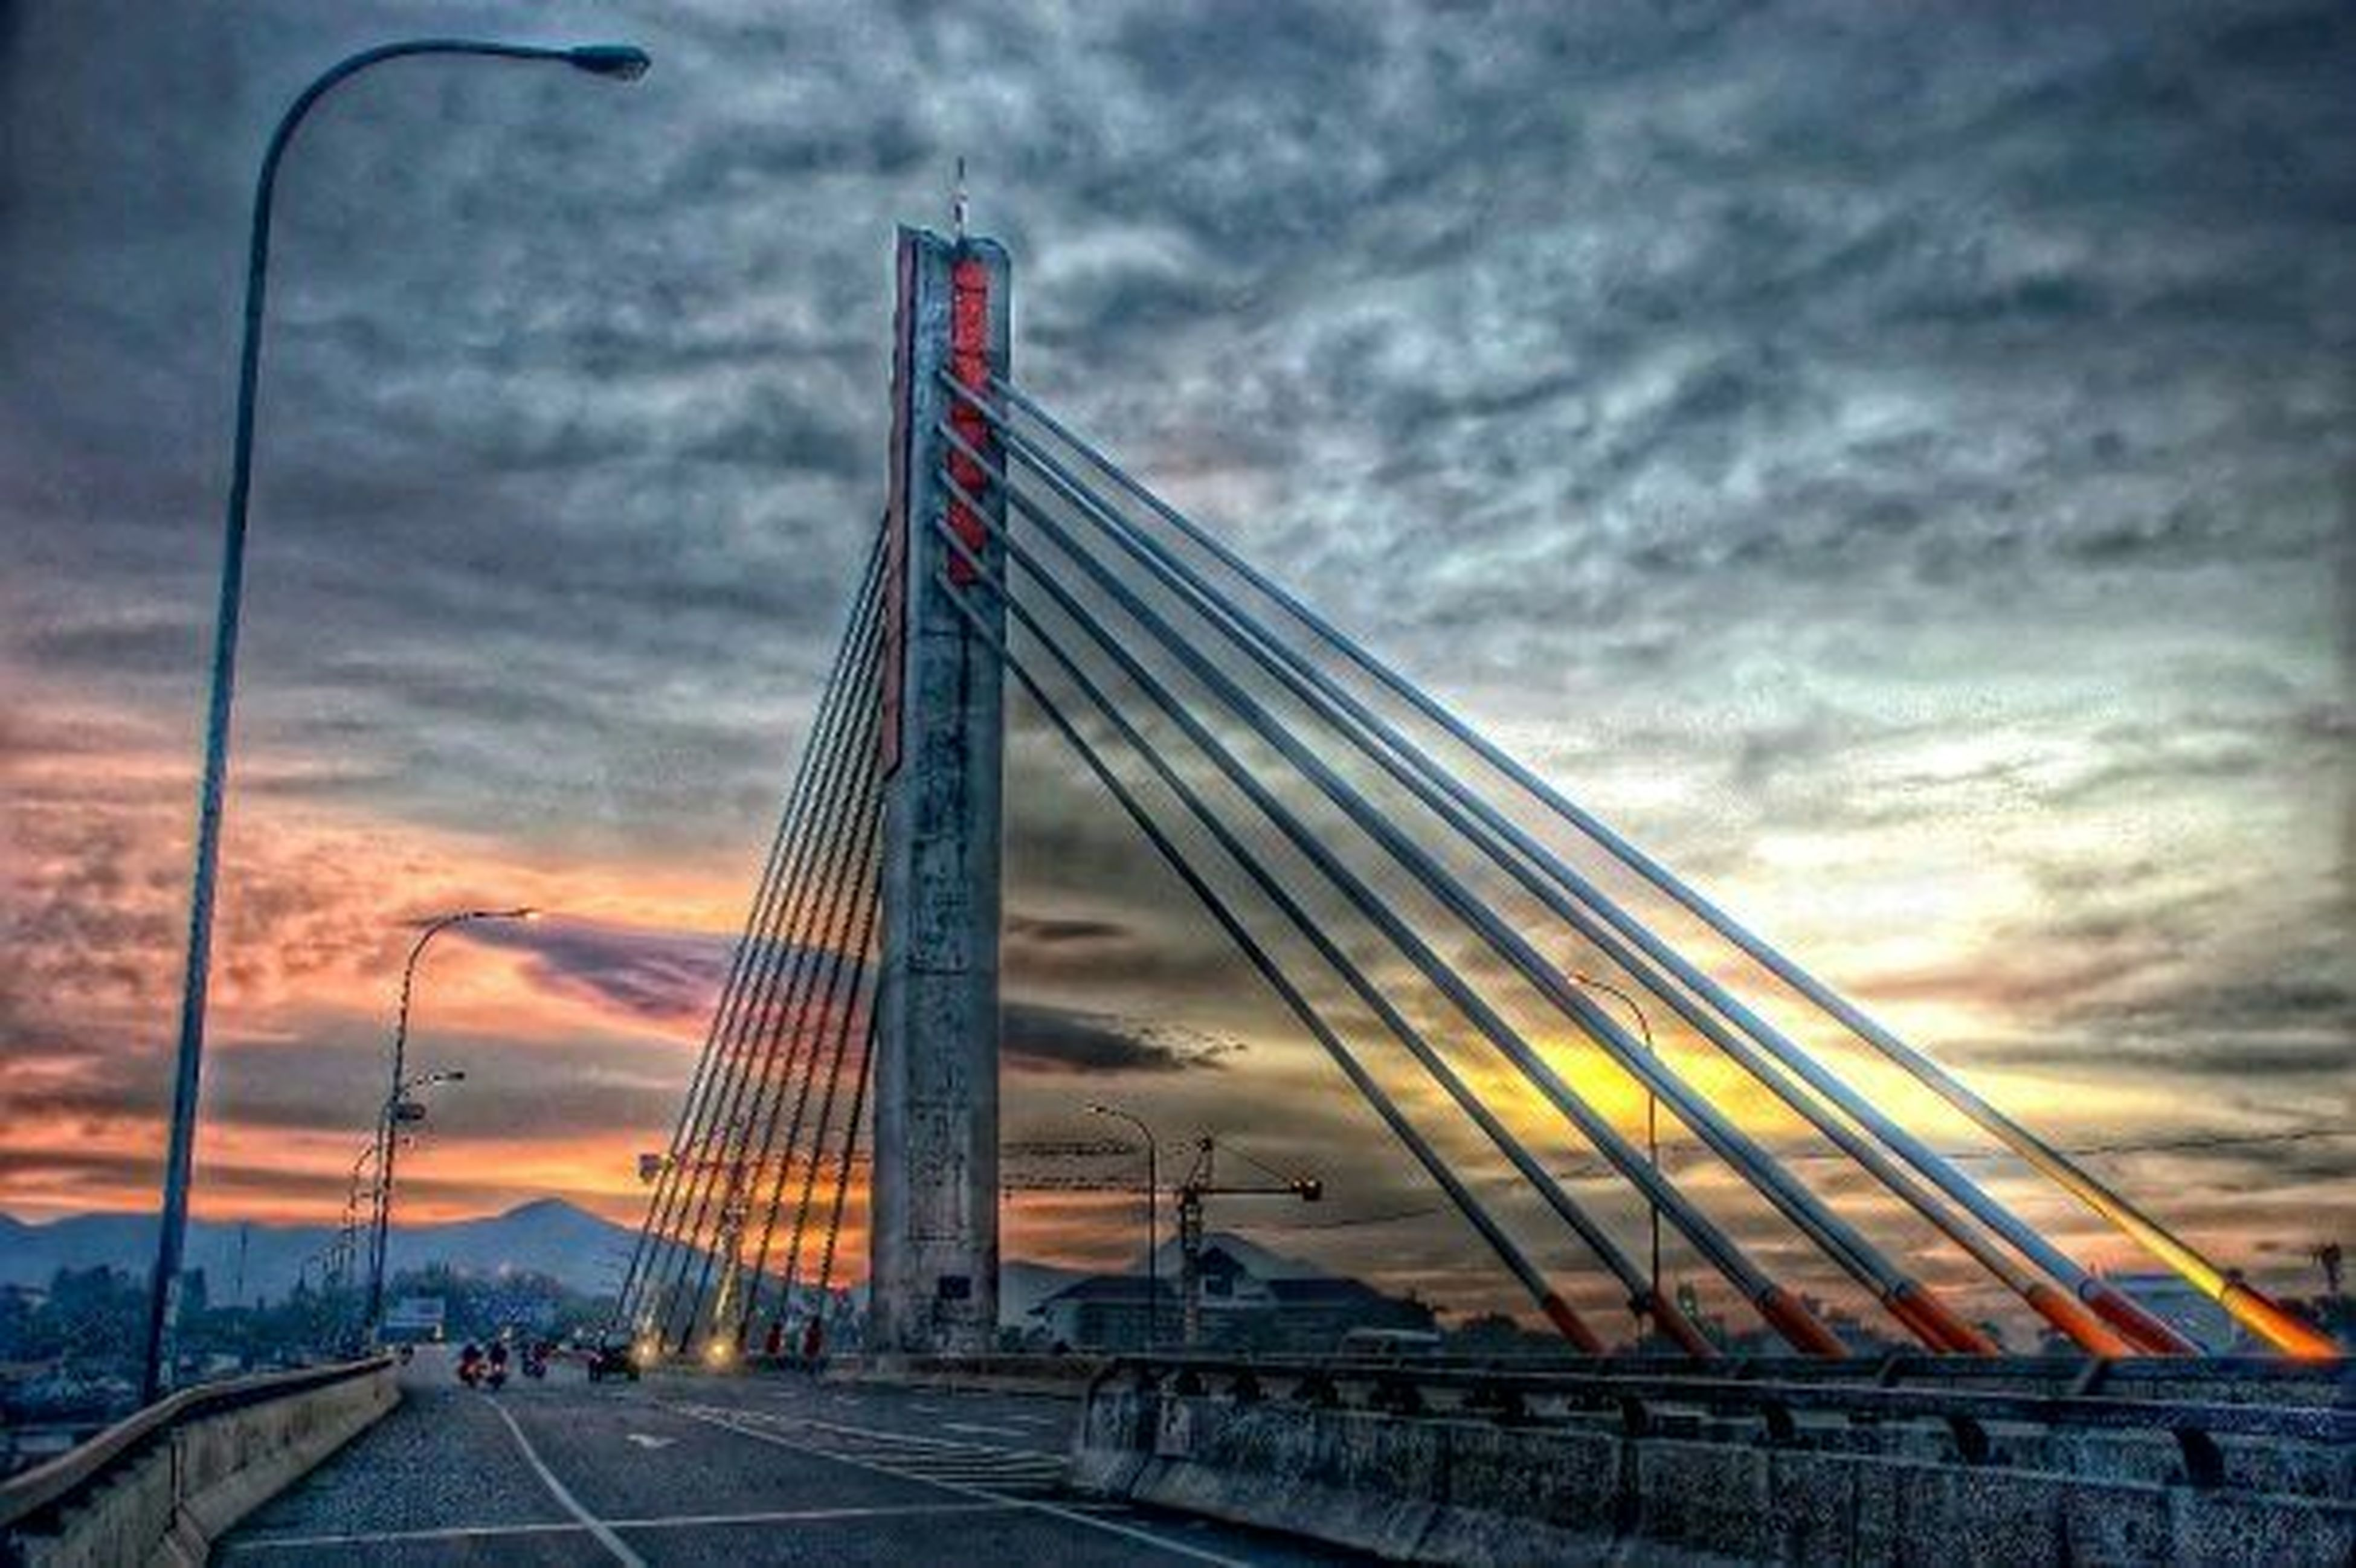 sky, cloud - sky, architecture, sunset, built structure, transportation, cloudy, cloud, connection, low angle view, bridge - man made structure, orange color, the way forward, engineering, road, outdoors, city, building exterior, street light, suspension bridge